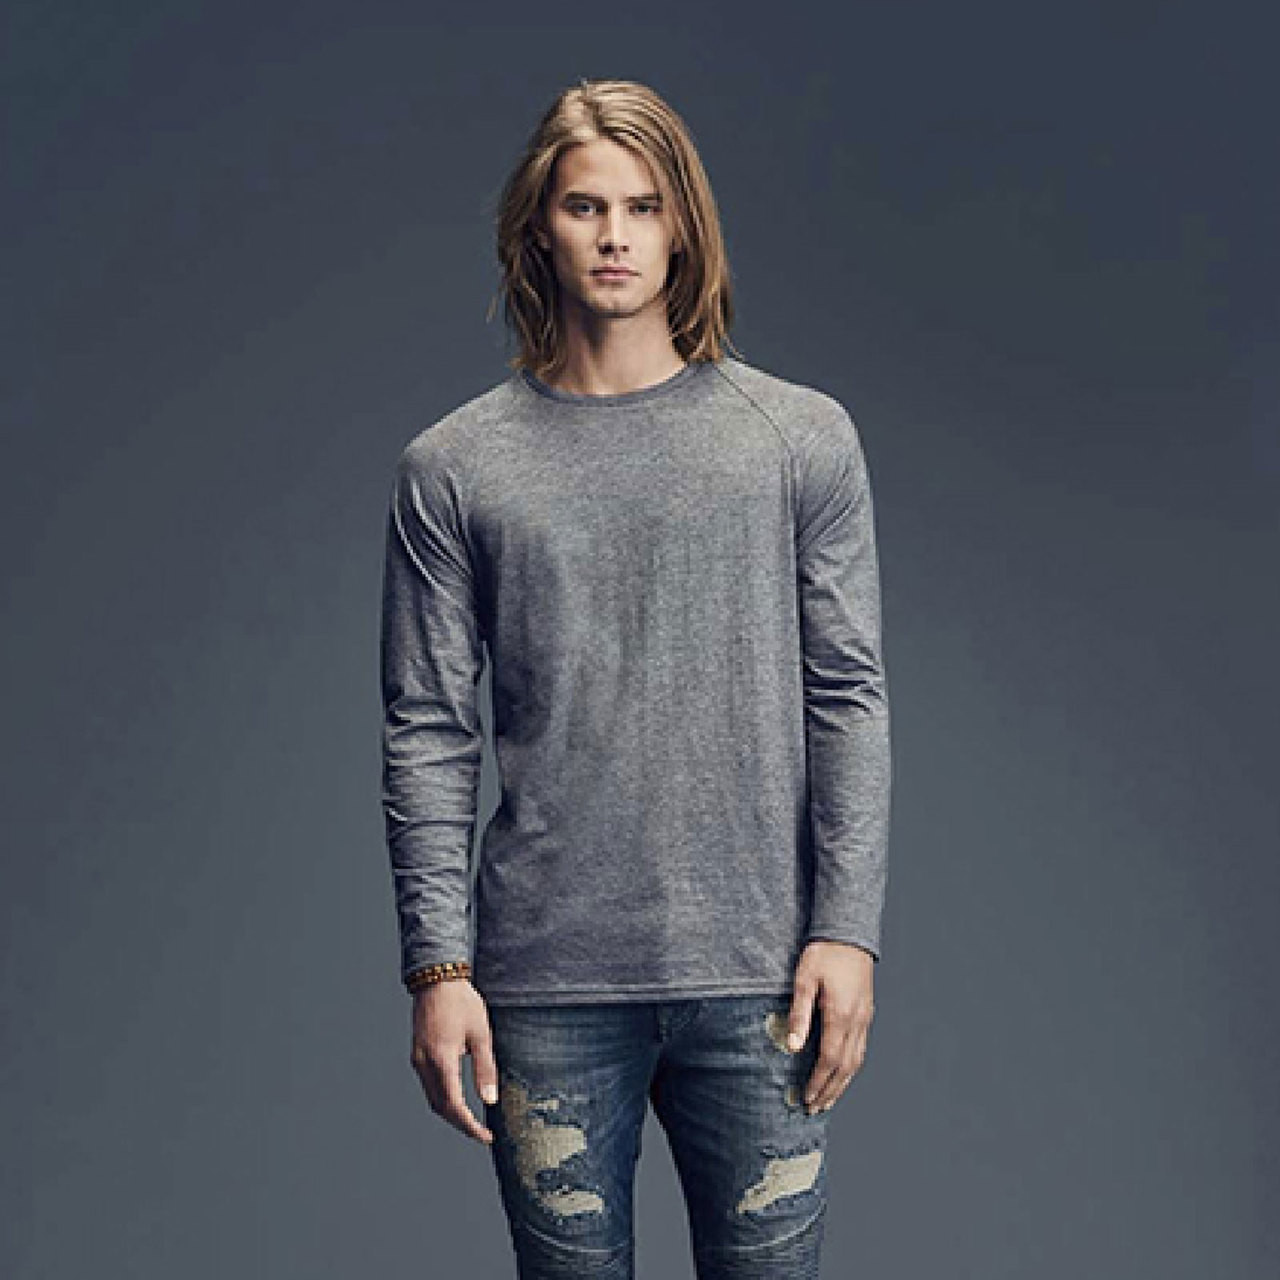 Anvil Fashion Basic Long And Lean Raglan Long Sleeve T-Shirt